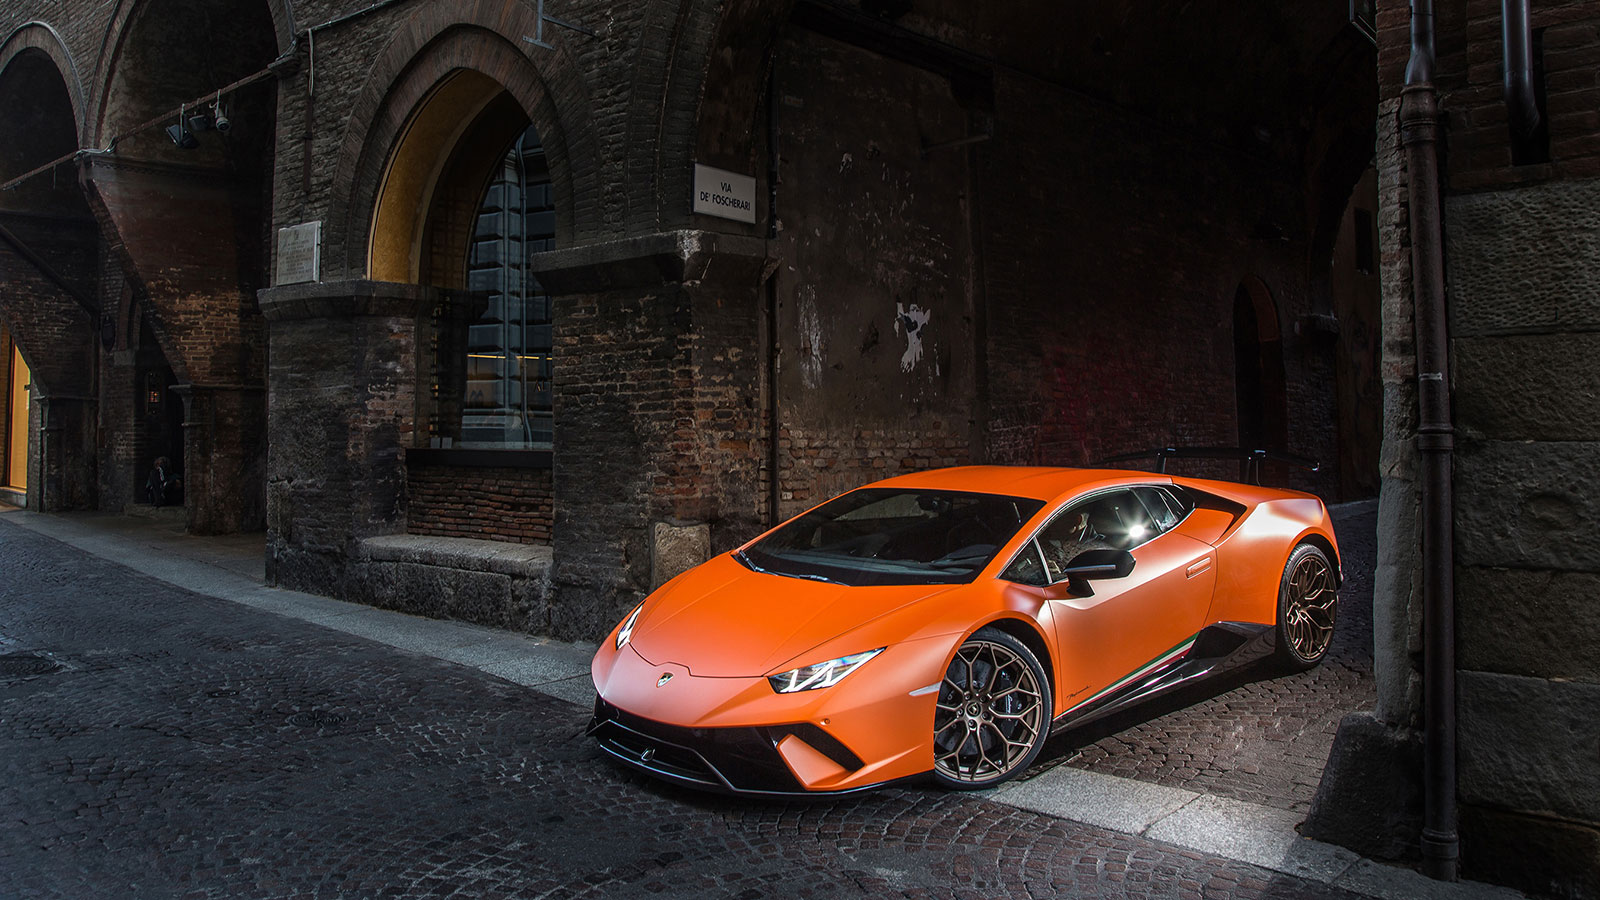 Lamborghini Huracan Performante - Raging Technology image 8